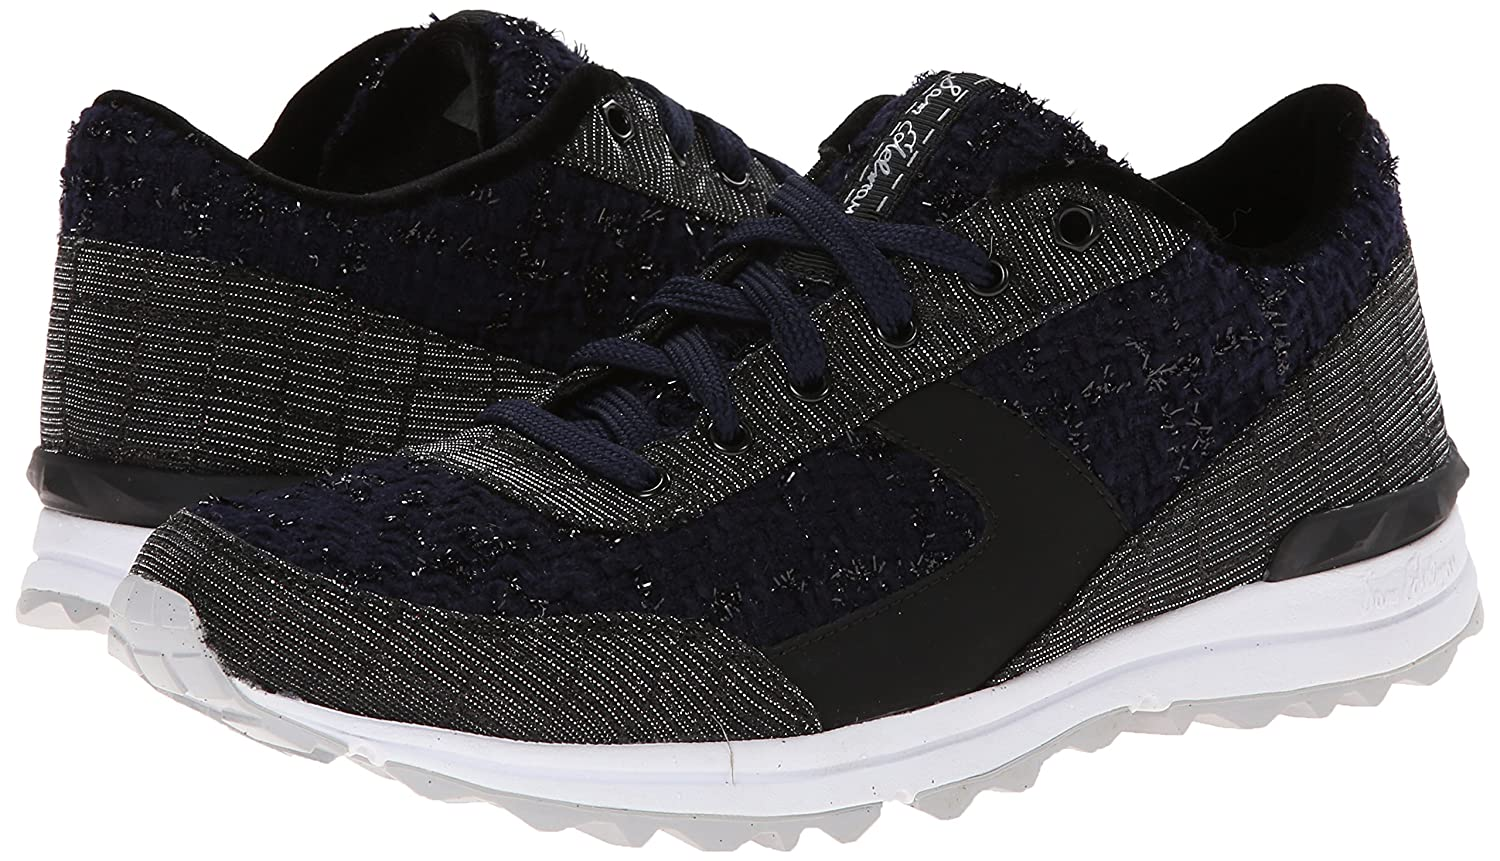 9c654a609e78f3 Sam Edelman Women s Dax Fashion Sneaker Black Navy Boucle 6.5 B(M) US  Buy  Online at Low Prices in India - Amazon.in